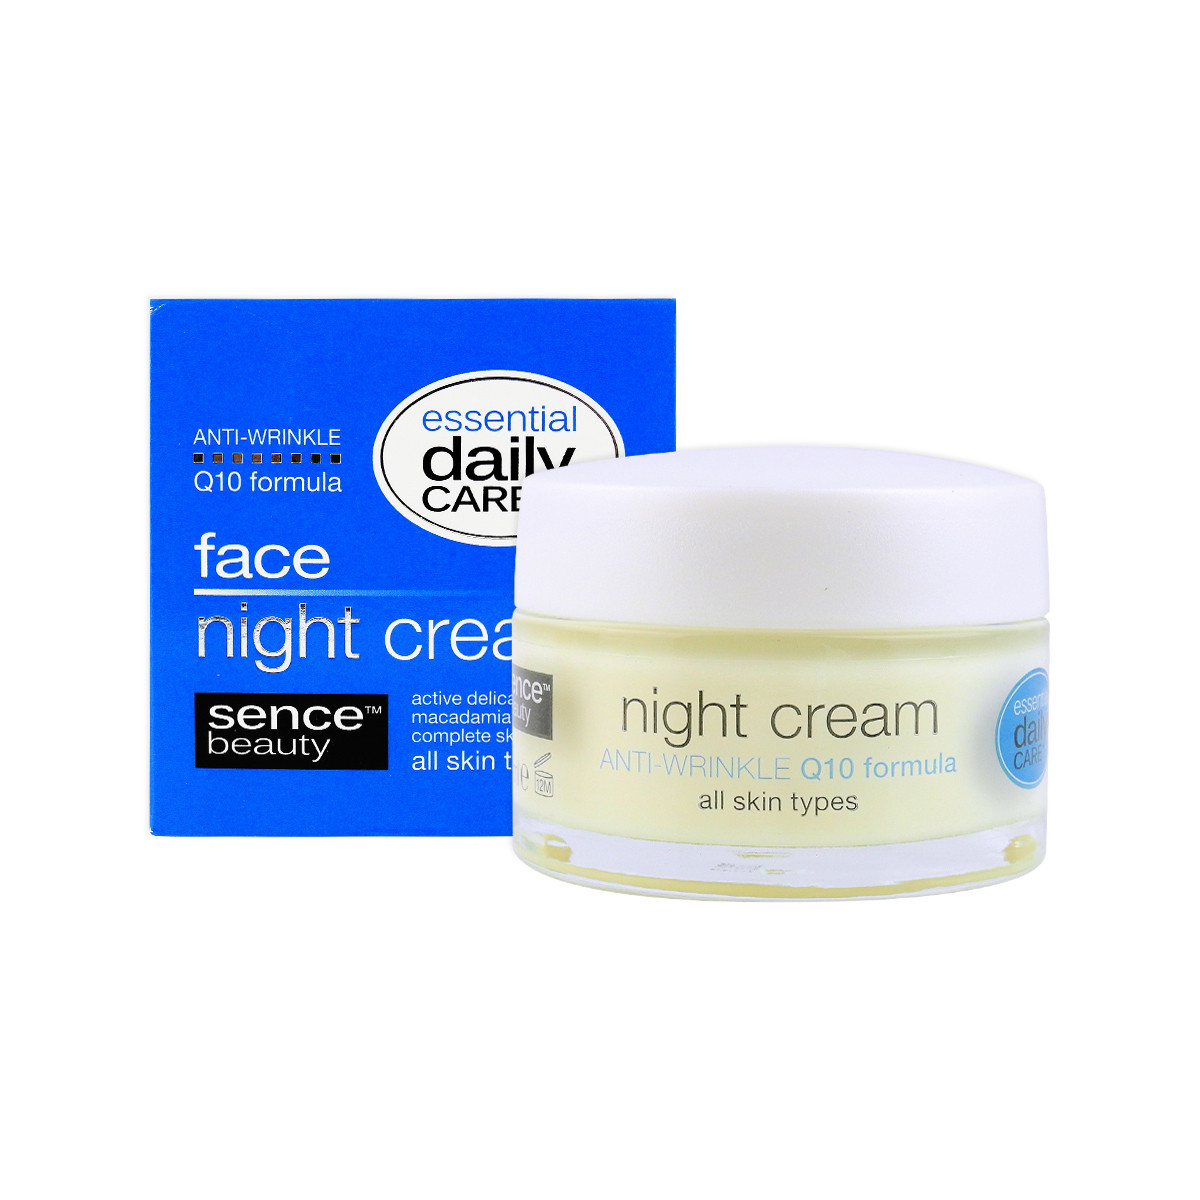 image of 歐洲Sencebeauty Q10緊實煥顏晚霜50ml   Europe Sencebeauty Night Cream Anti Wrinkle Q10 Formula 50ml